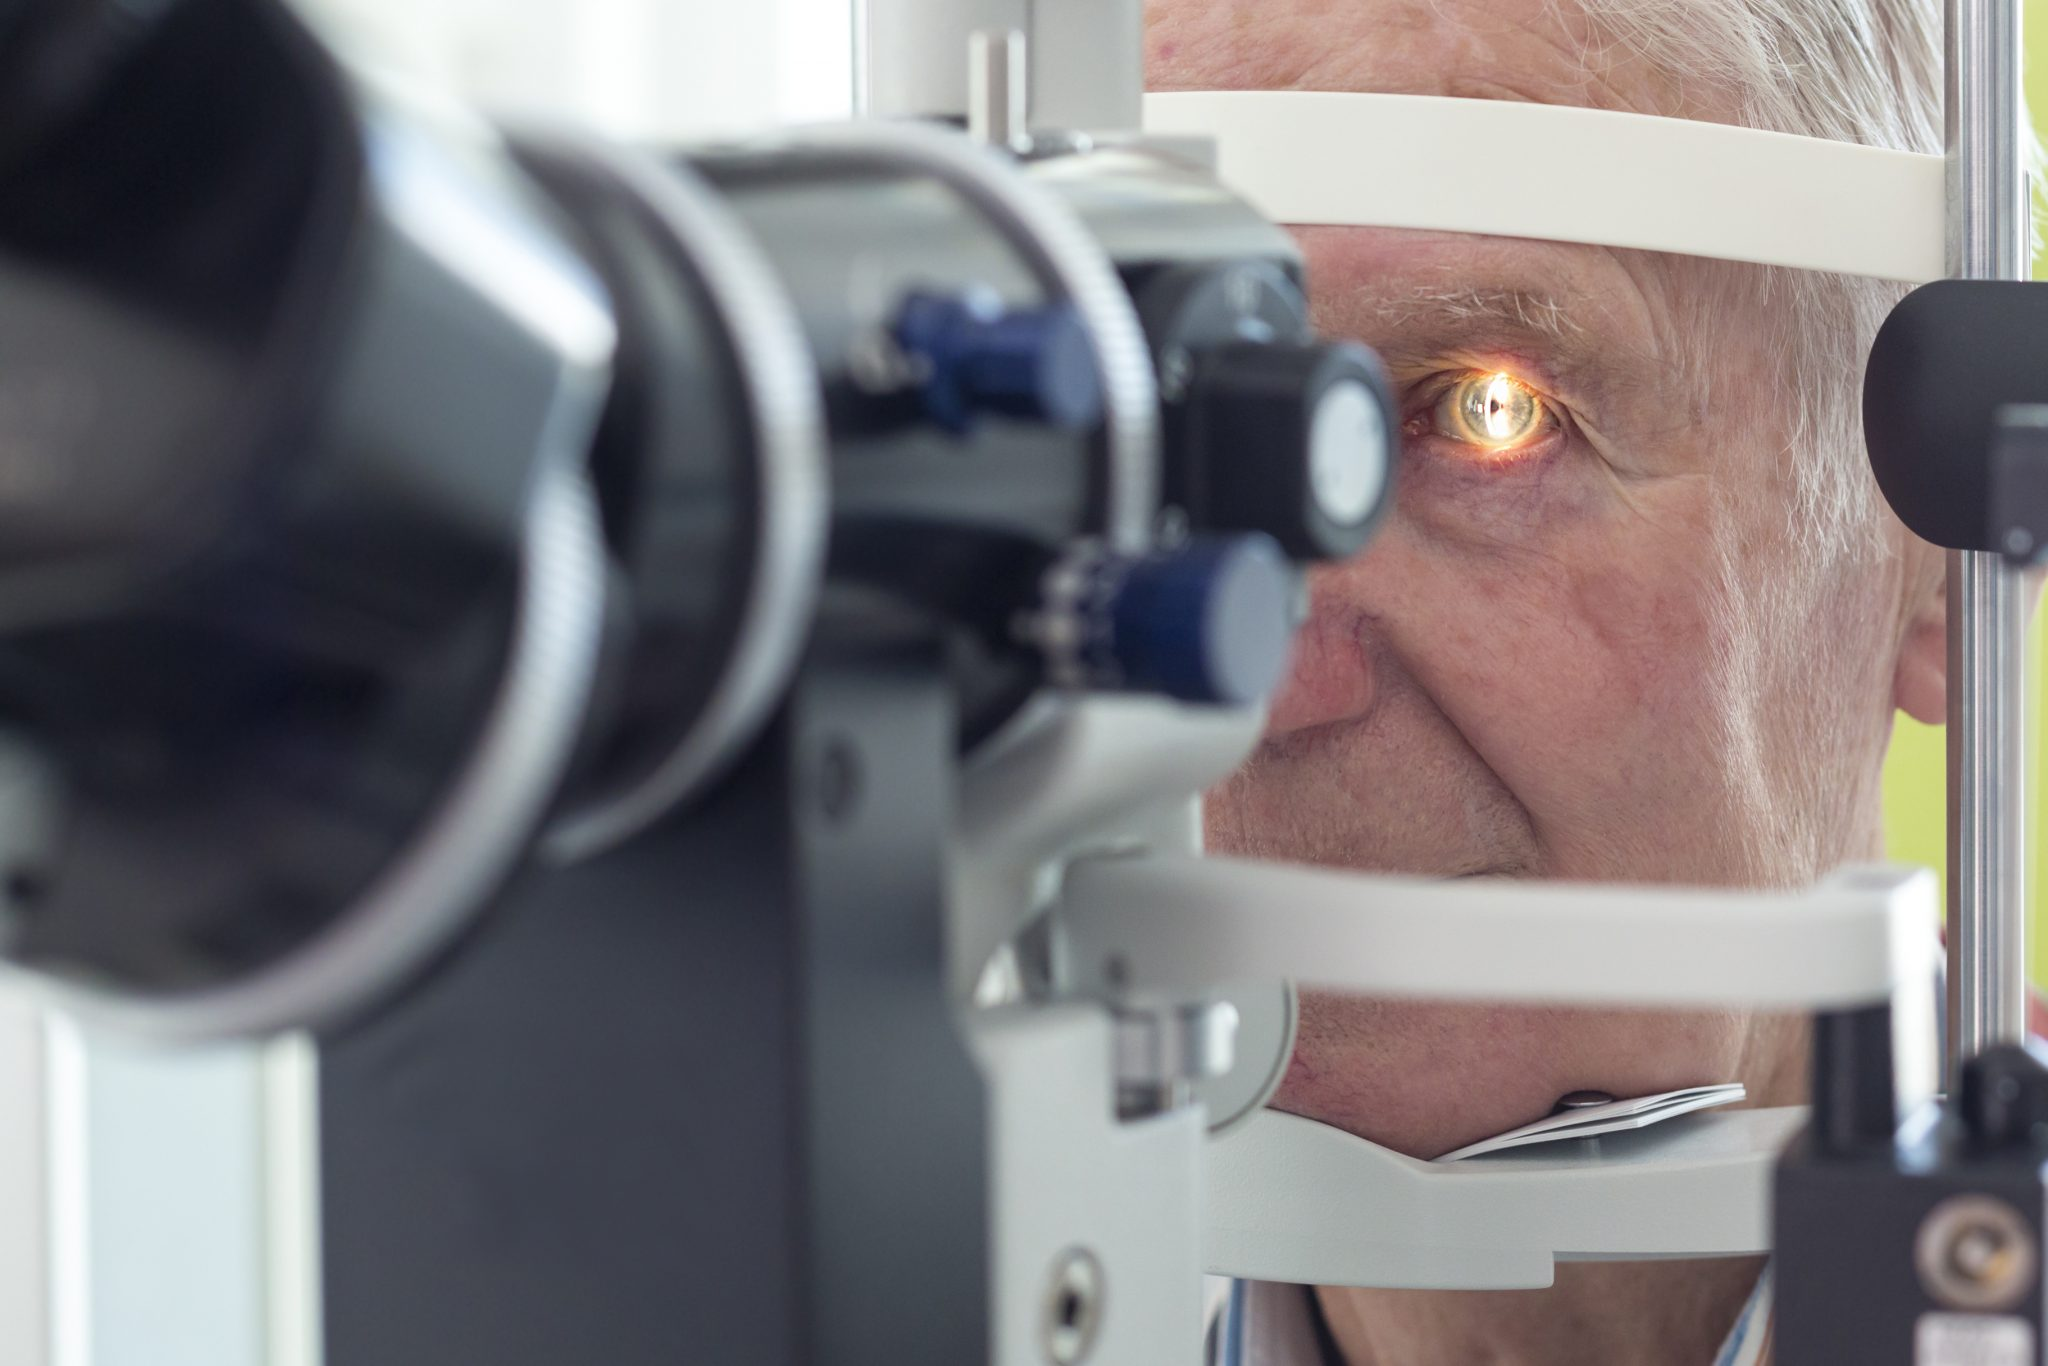 stem-cells-cure-cataracts-eye-exam